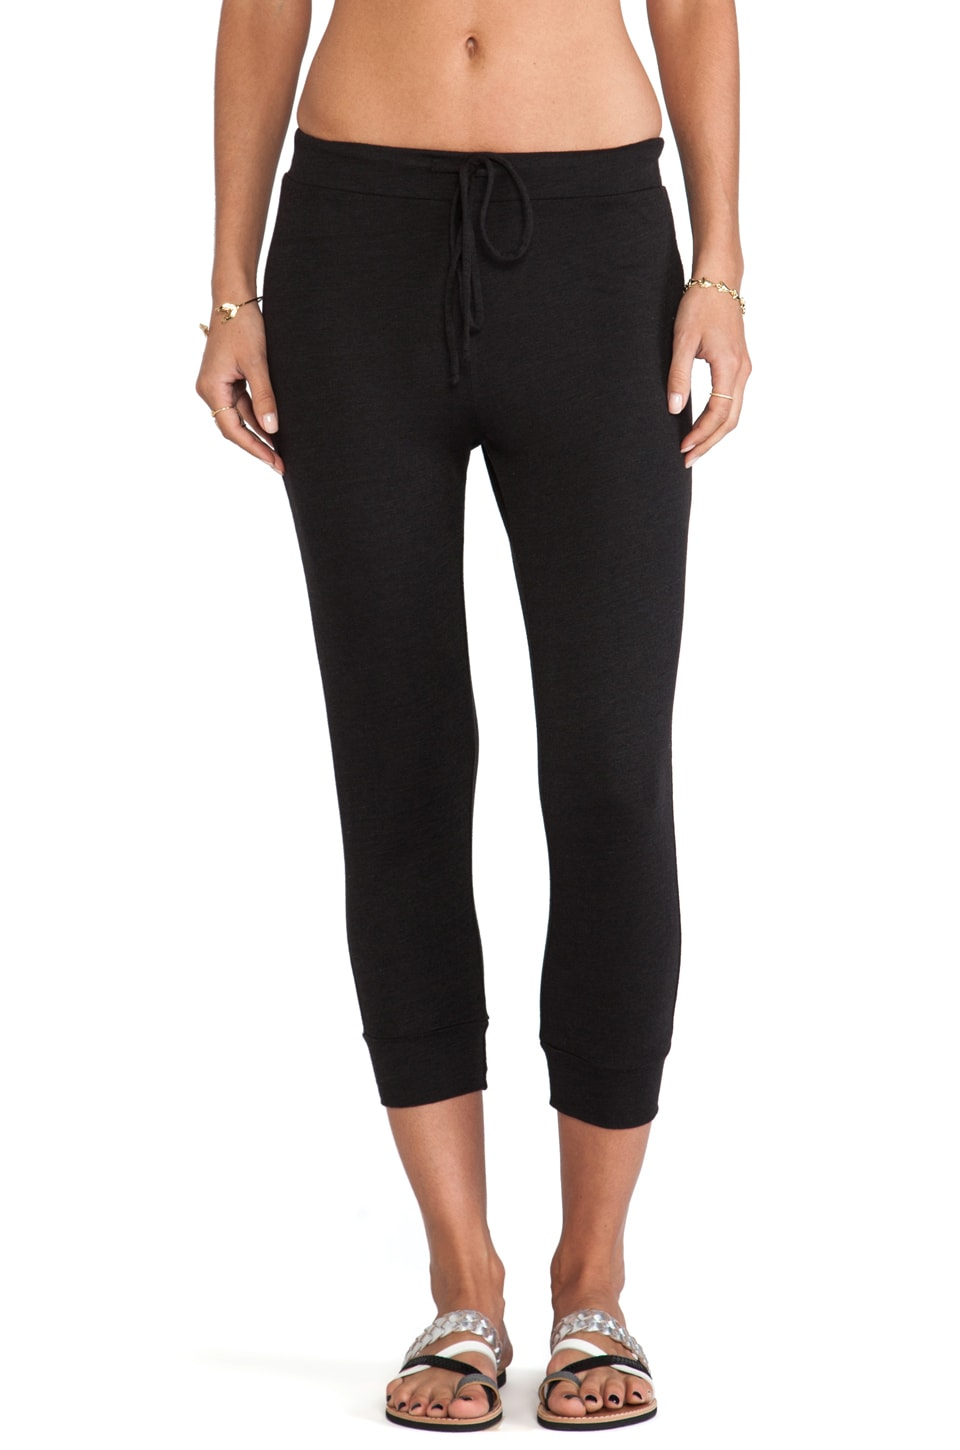 Lanston Cropped Pant in Black